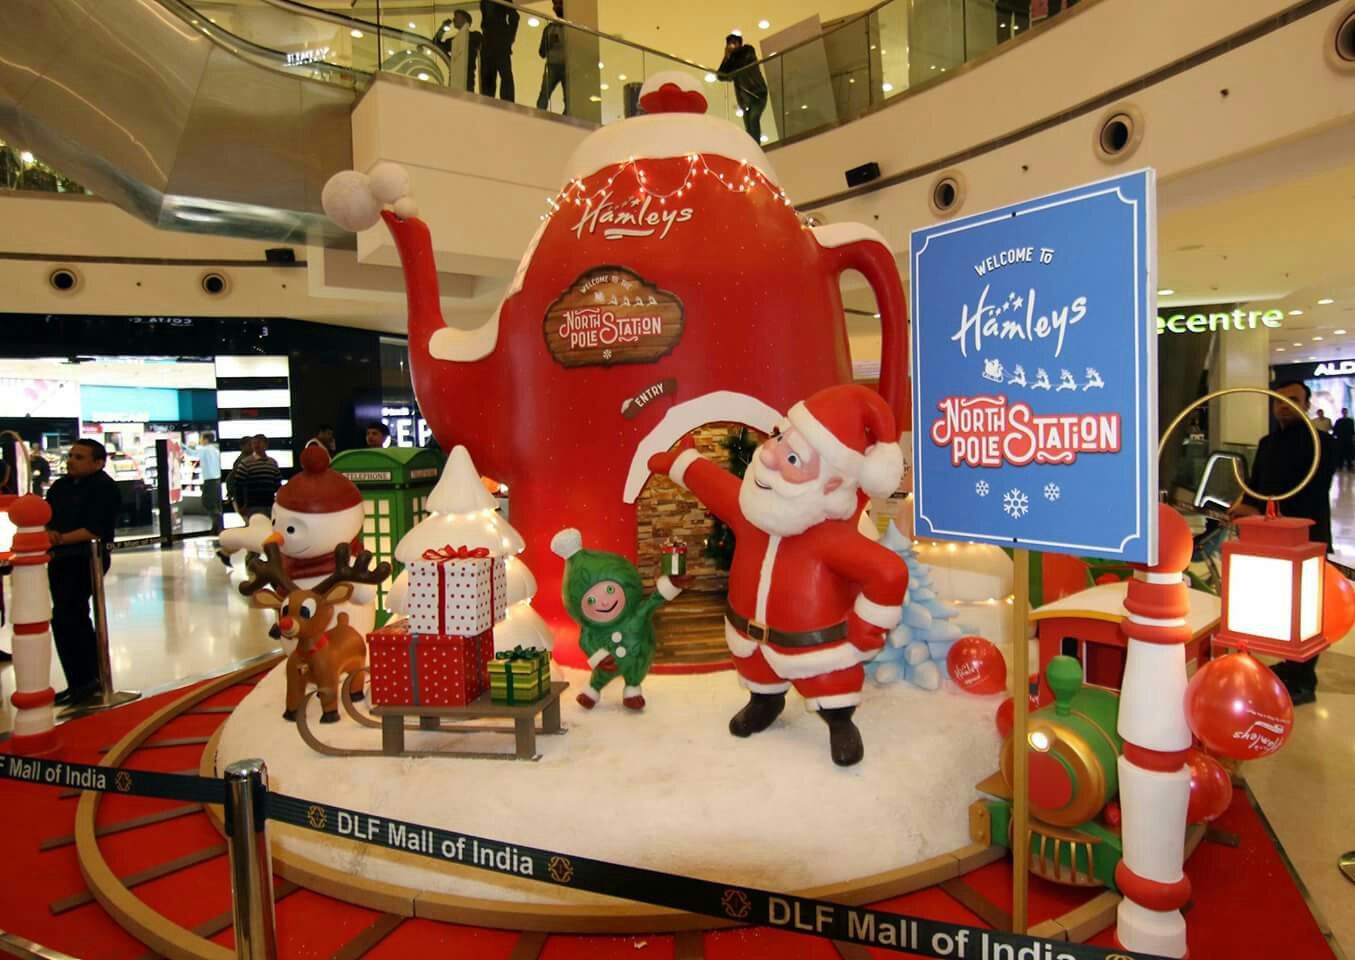 ambience malls while ambience malls is celebrating 10 years of operations ambience gurgaon is a decade old and little did we realise it has given us so